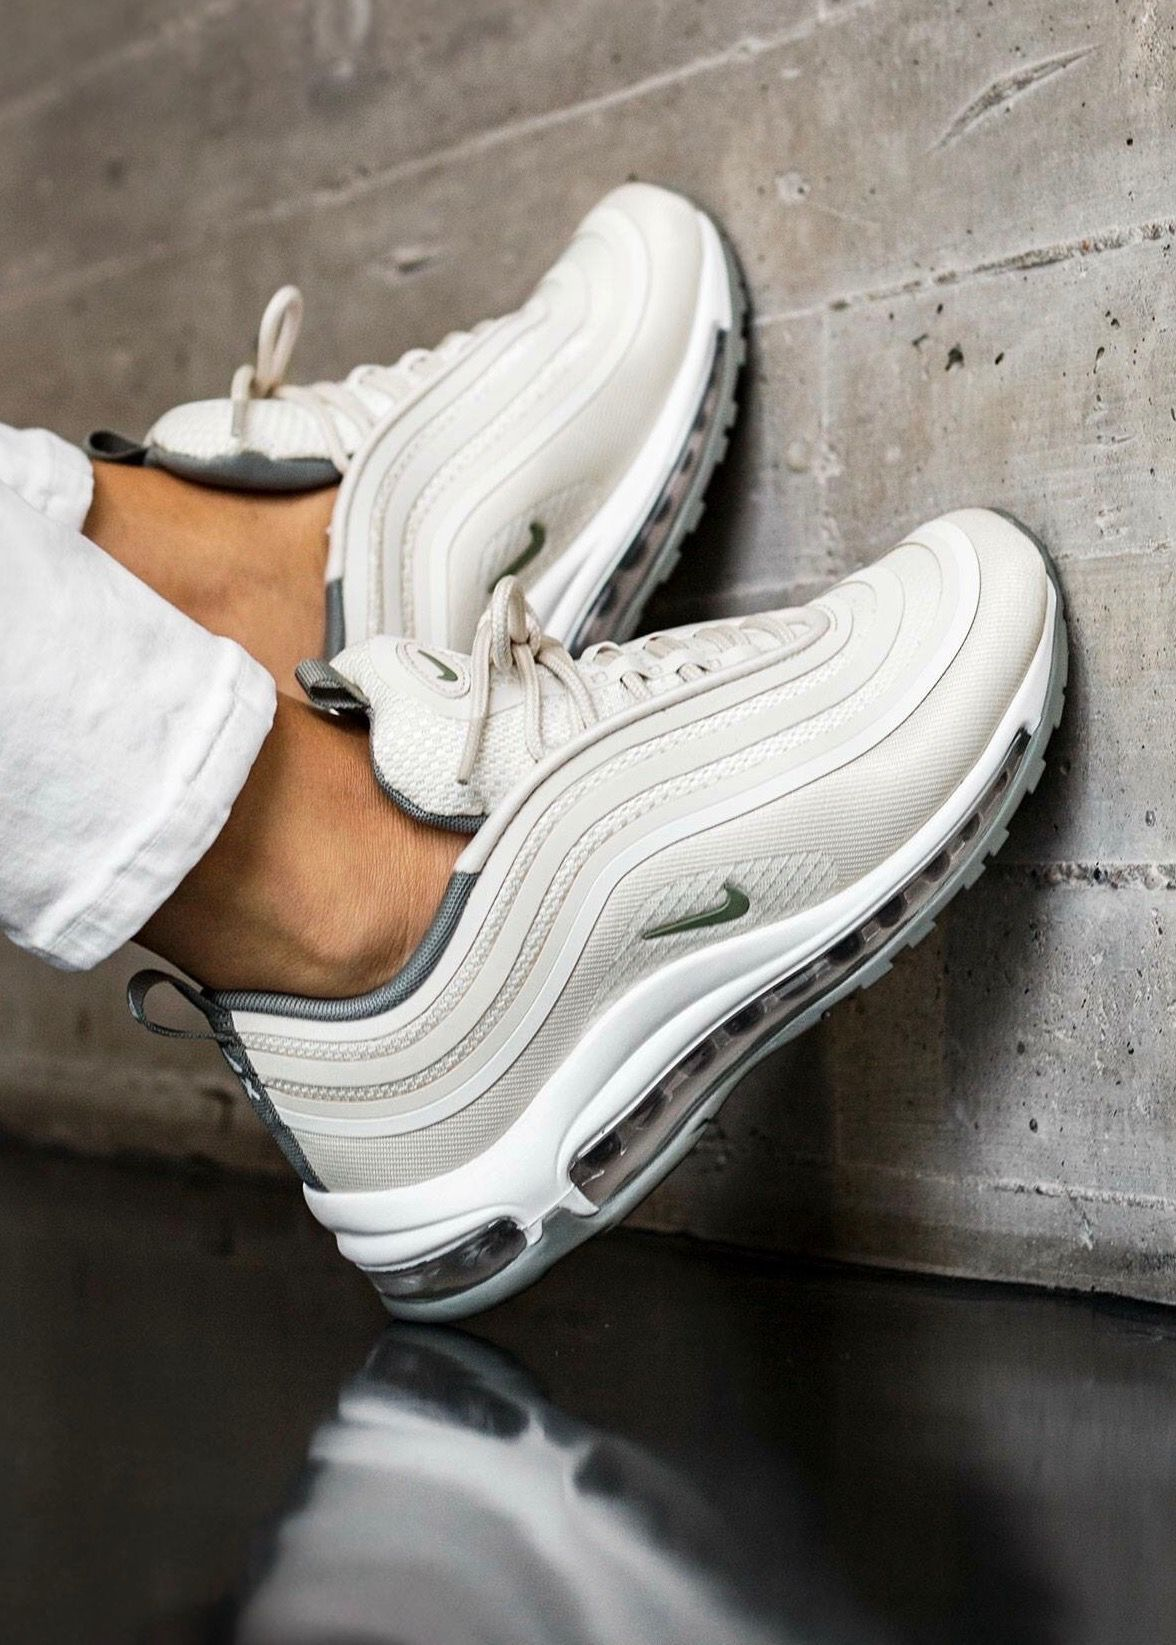 Women Shoes | Air max 97 | Zapatos nike, Zapatos nike mujer